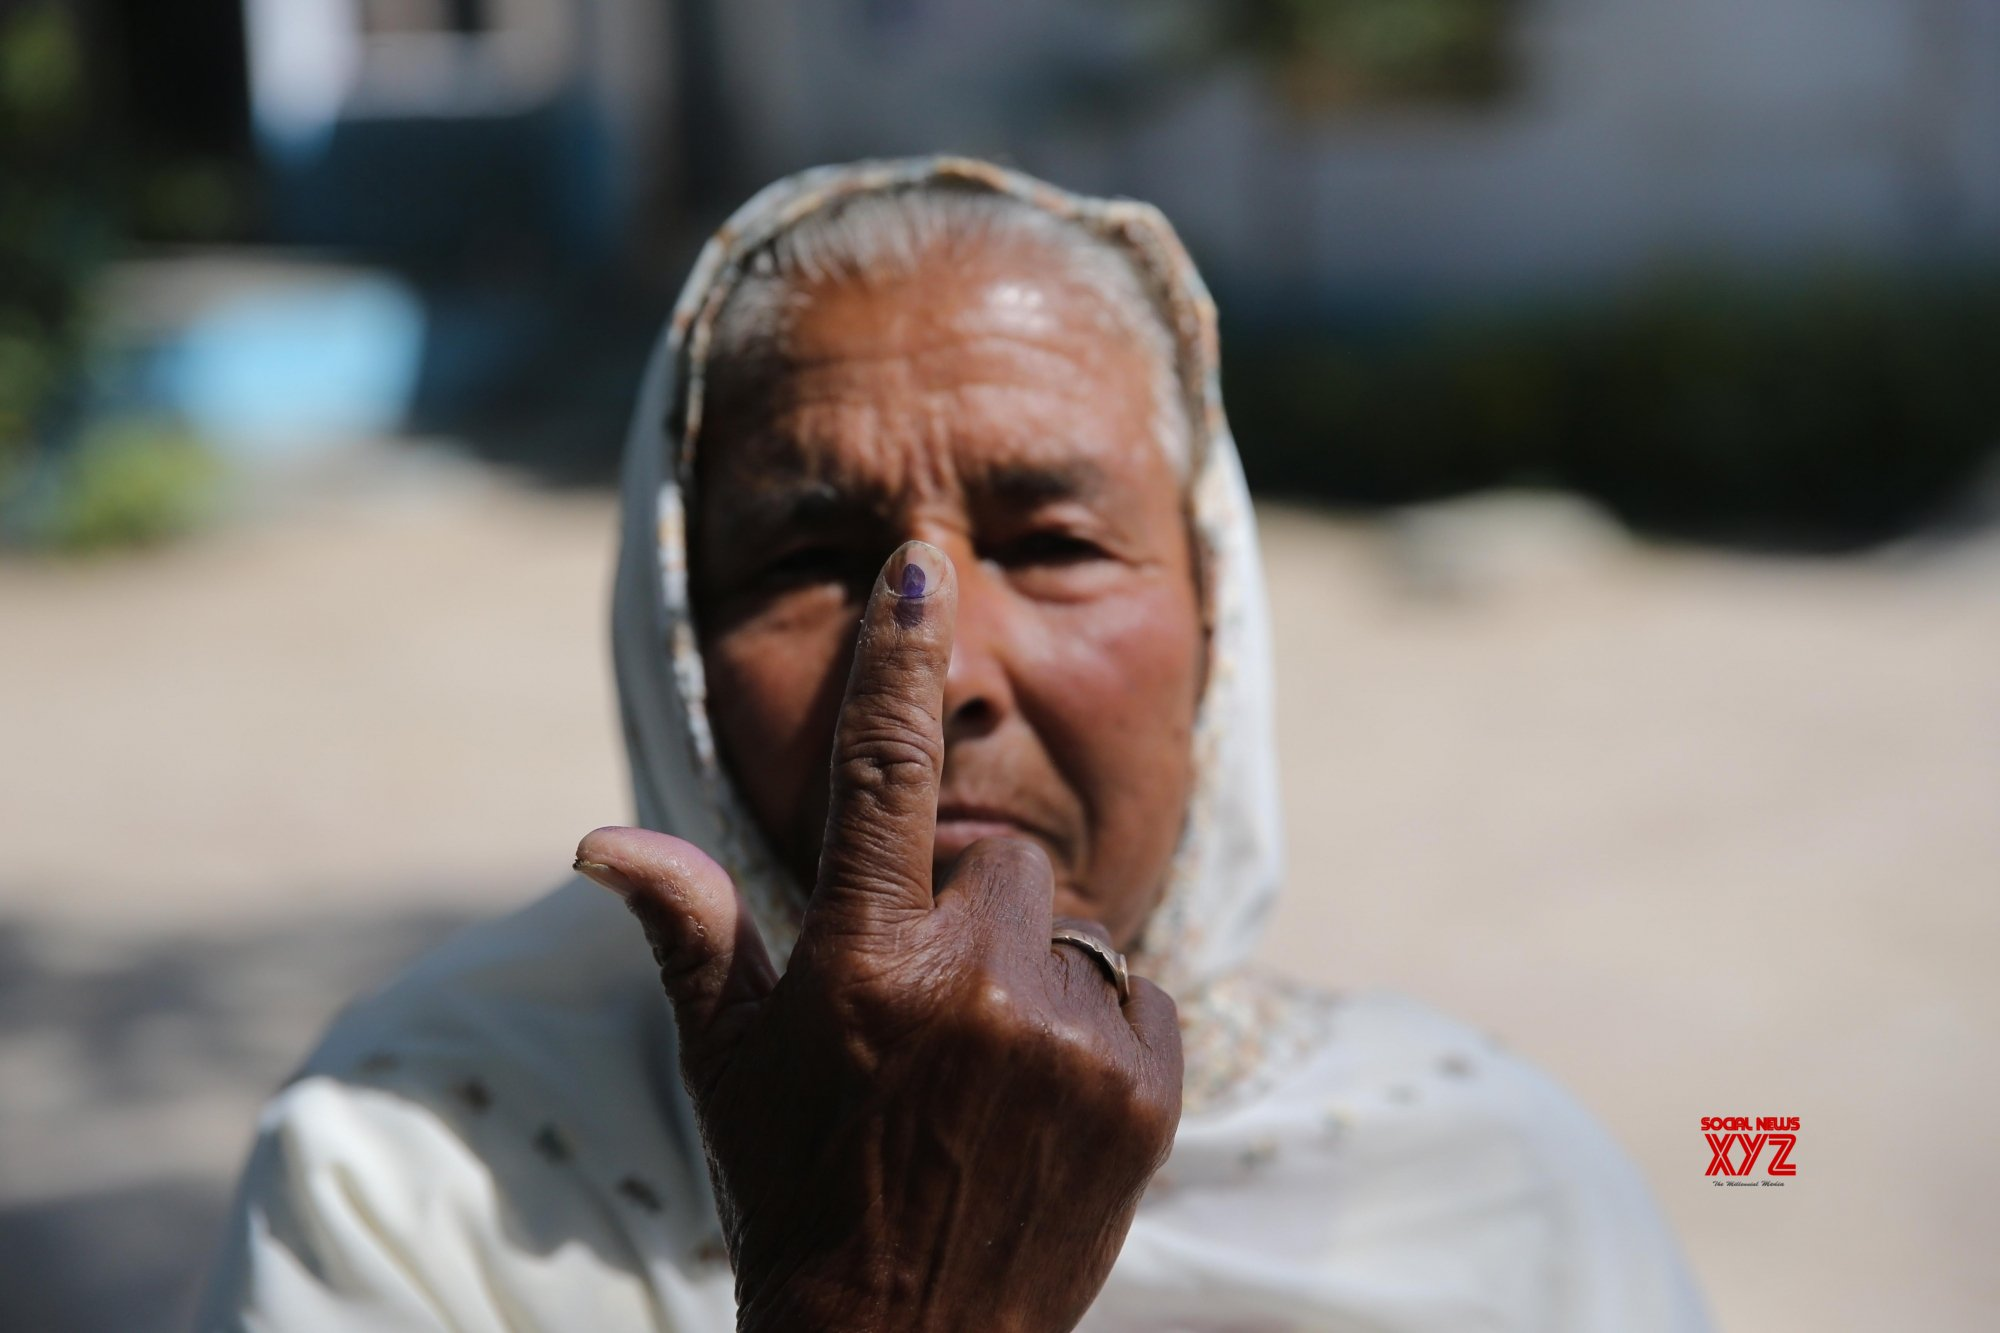 Amritsar: An elderly lady shows her forefinger marked with indelible ink after casting vote during the seventh and the last phase of 2019 Lok Sabha Elections at a polling booth in Amritsar on May 19, 2019. (Photo: IANS)